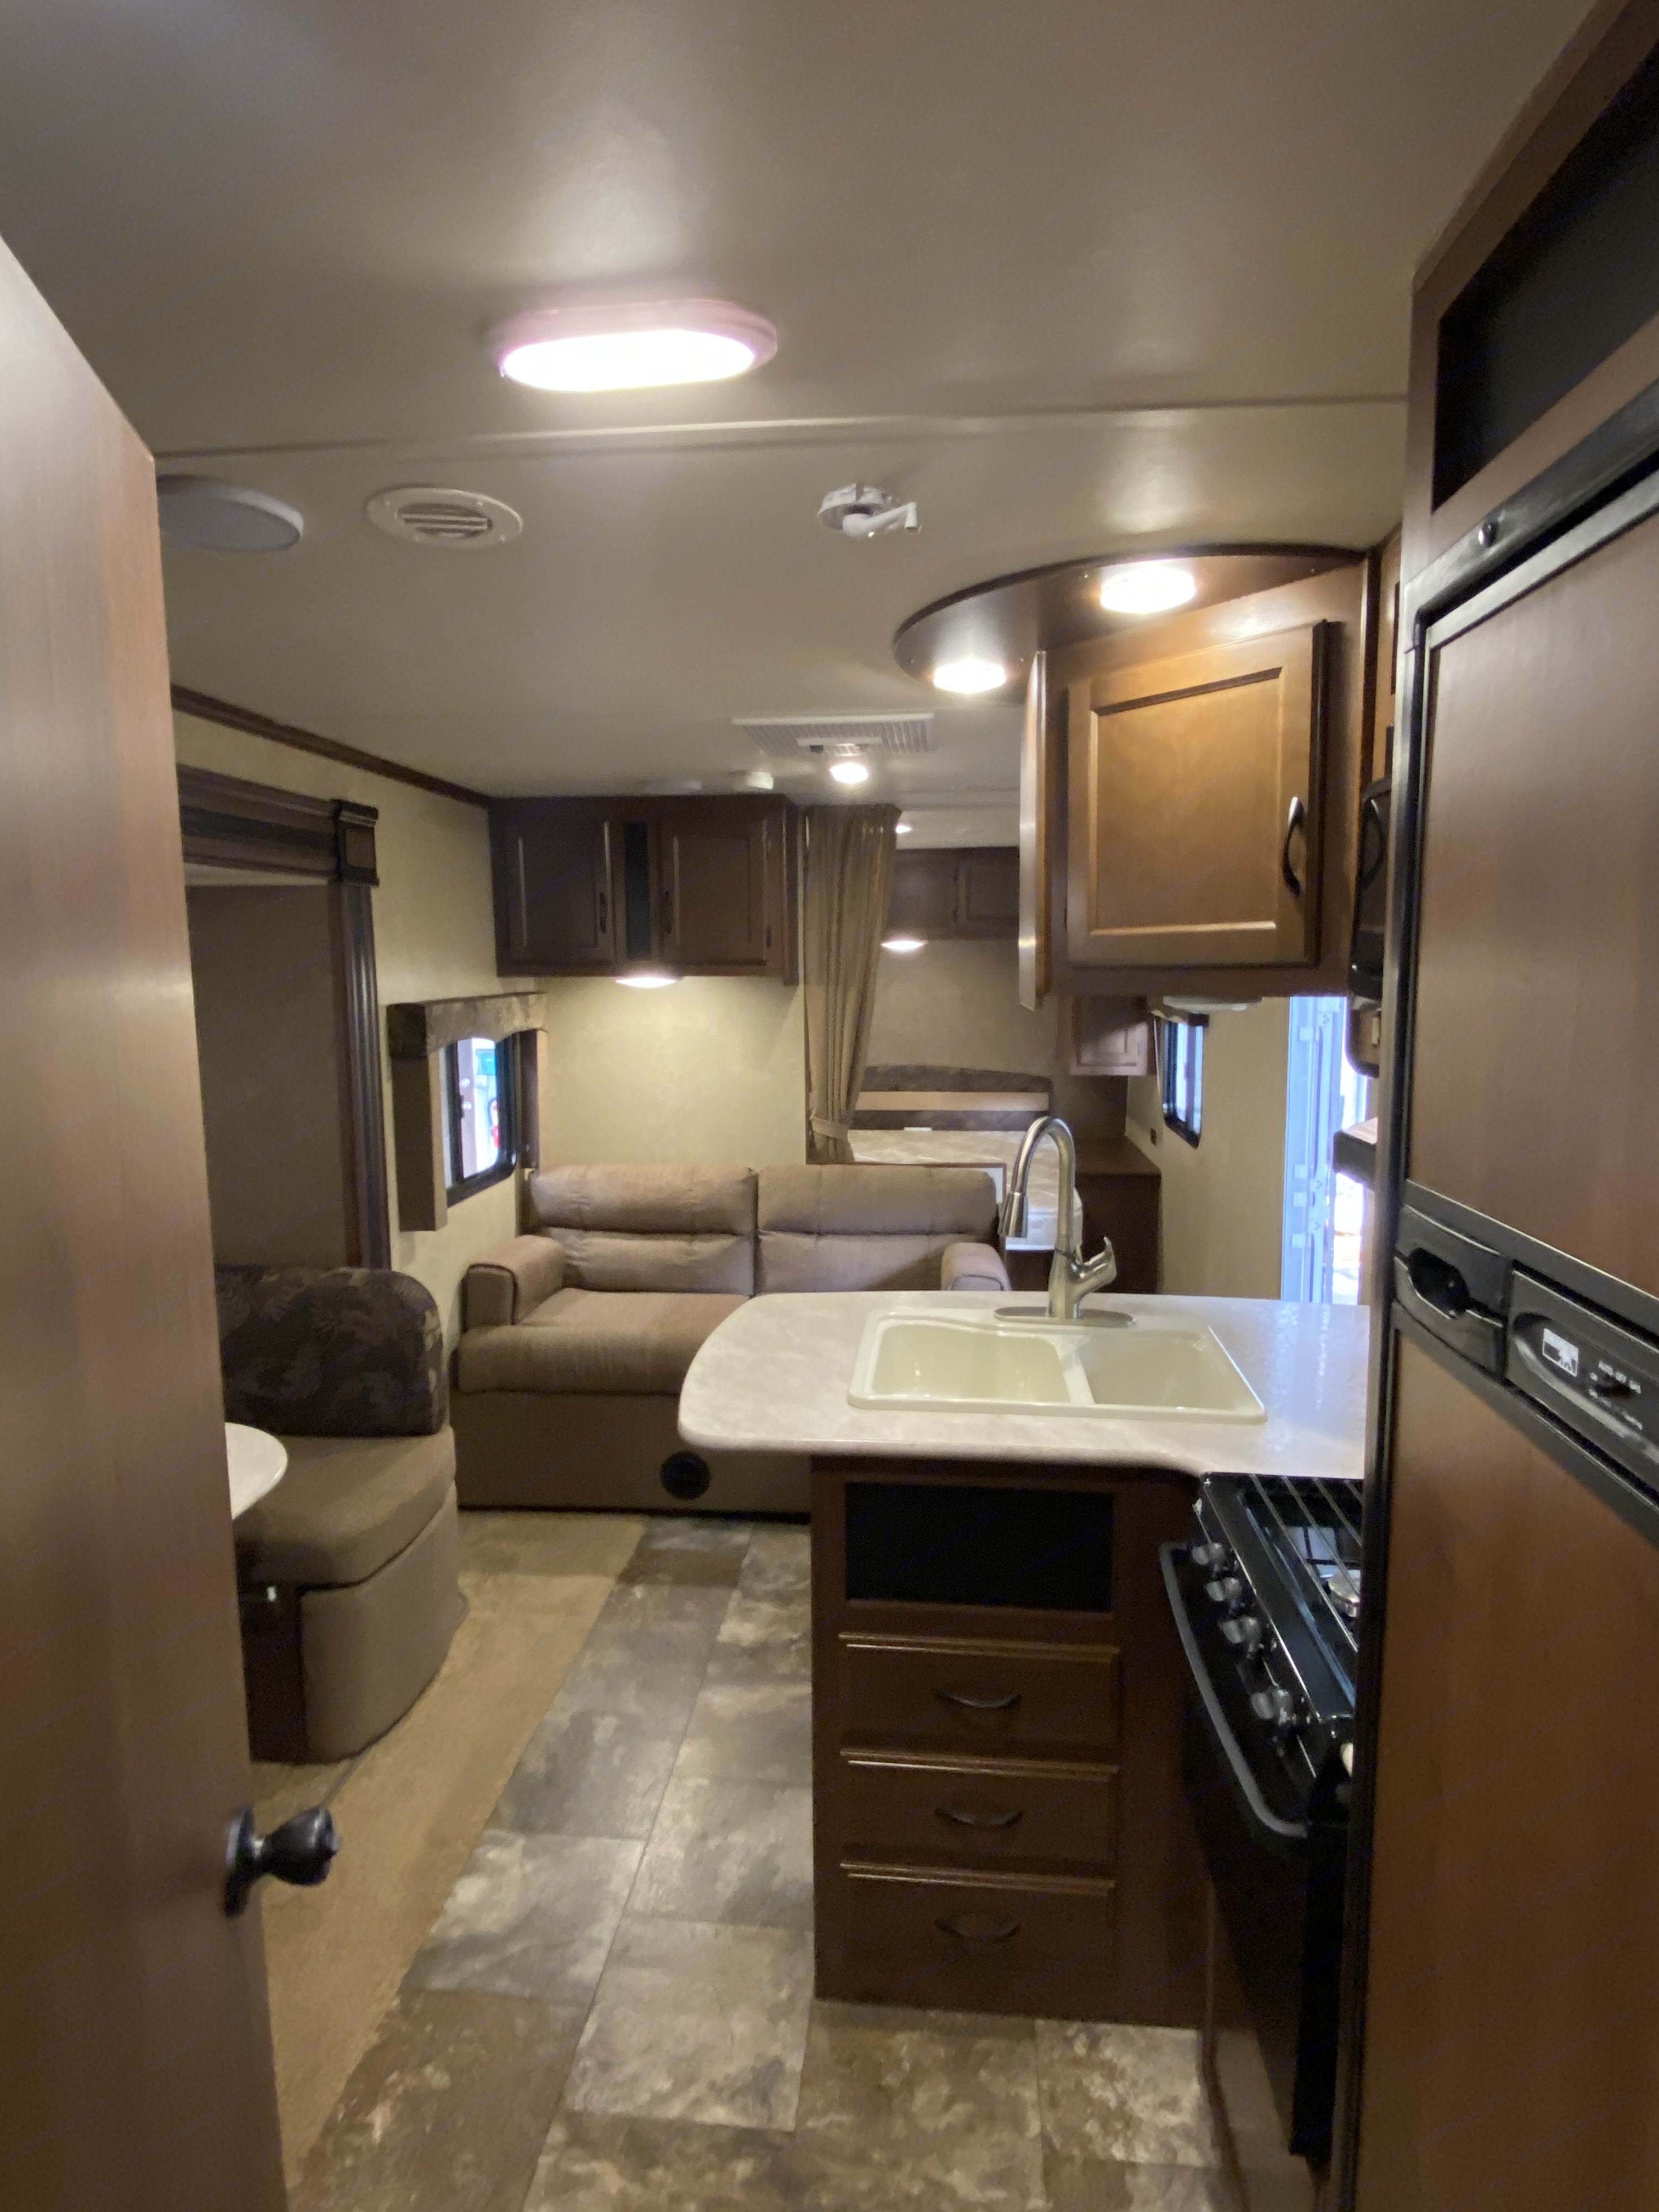 View from kitchen of island, fridge (with freezer), stove, cupboard and futon sofa. . Jayco Camper Trailer- Swift 2014